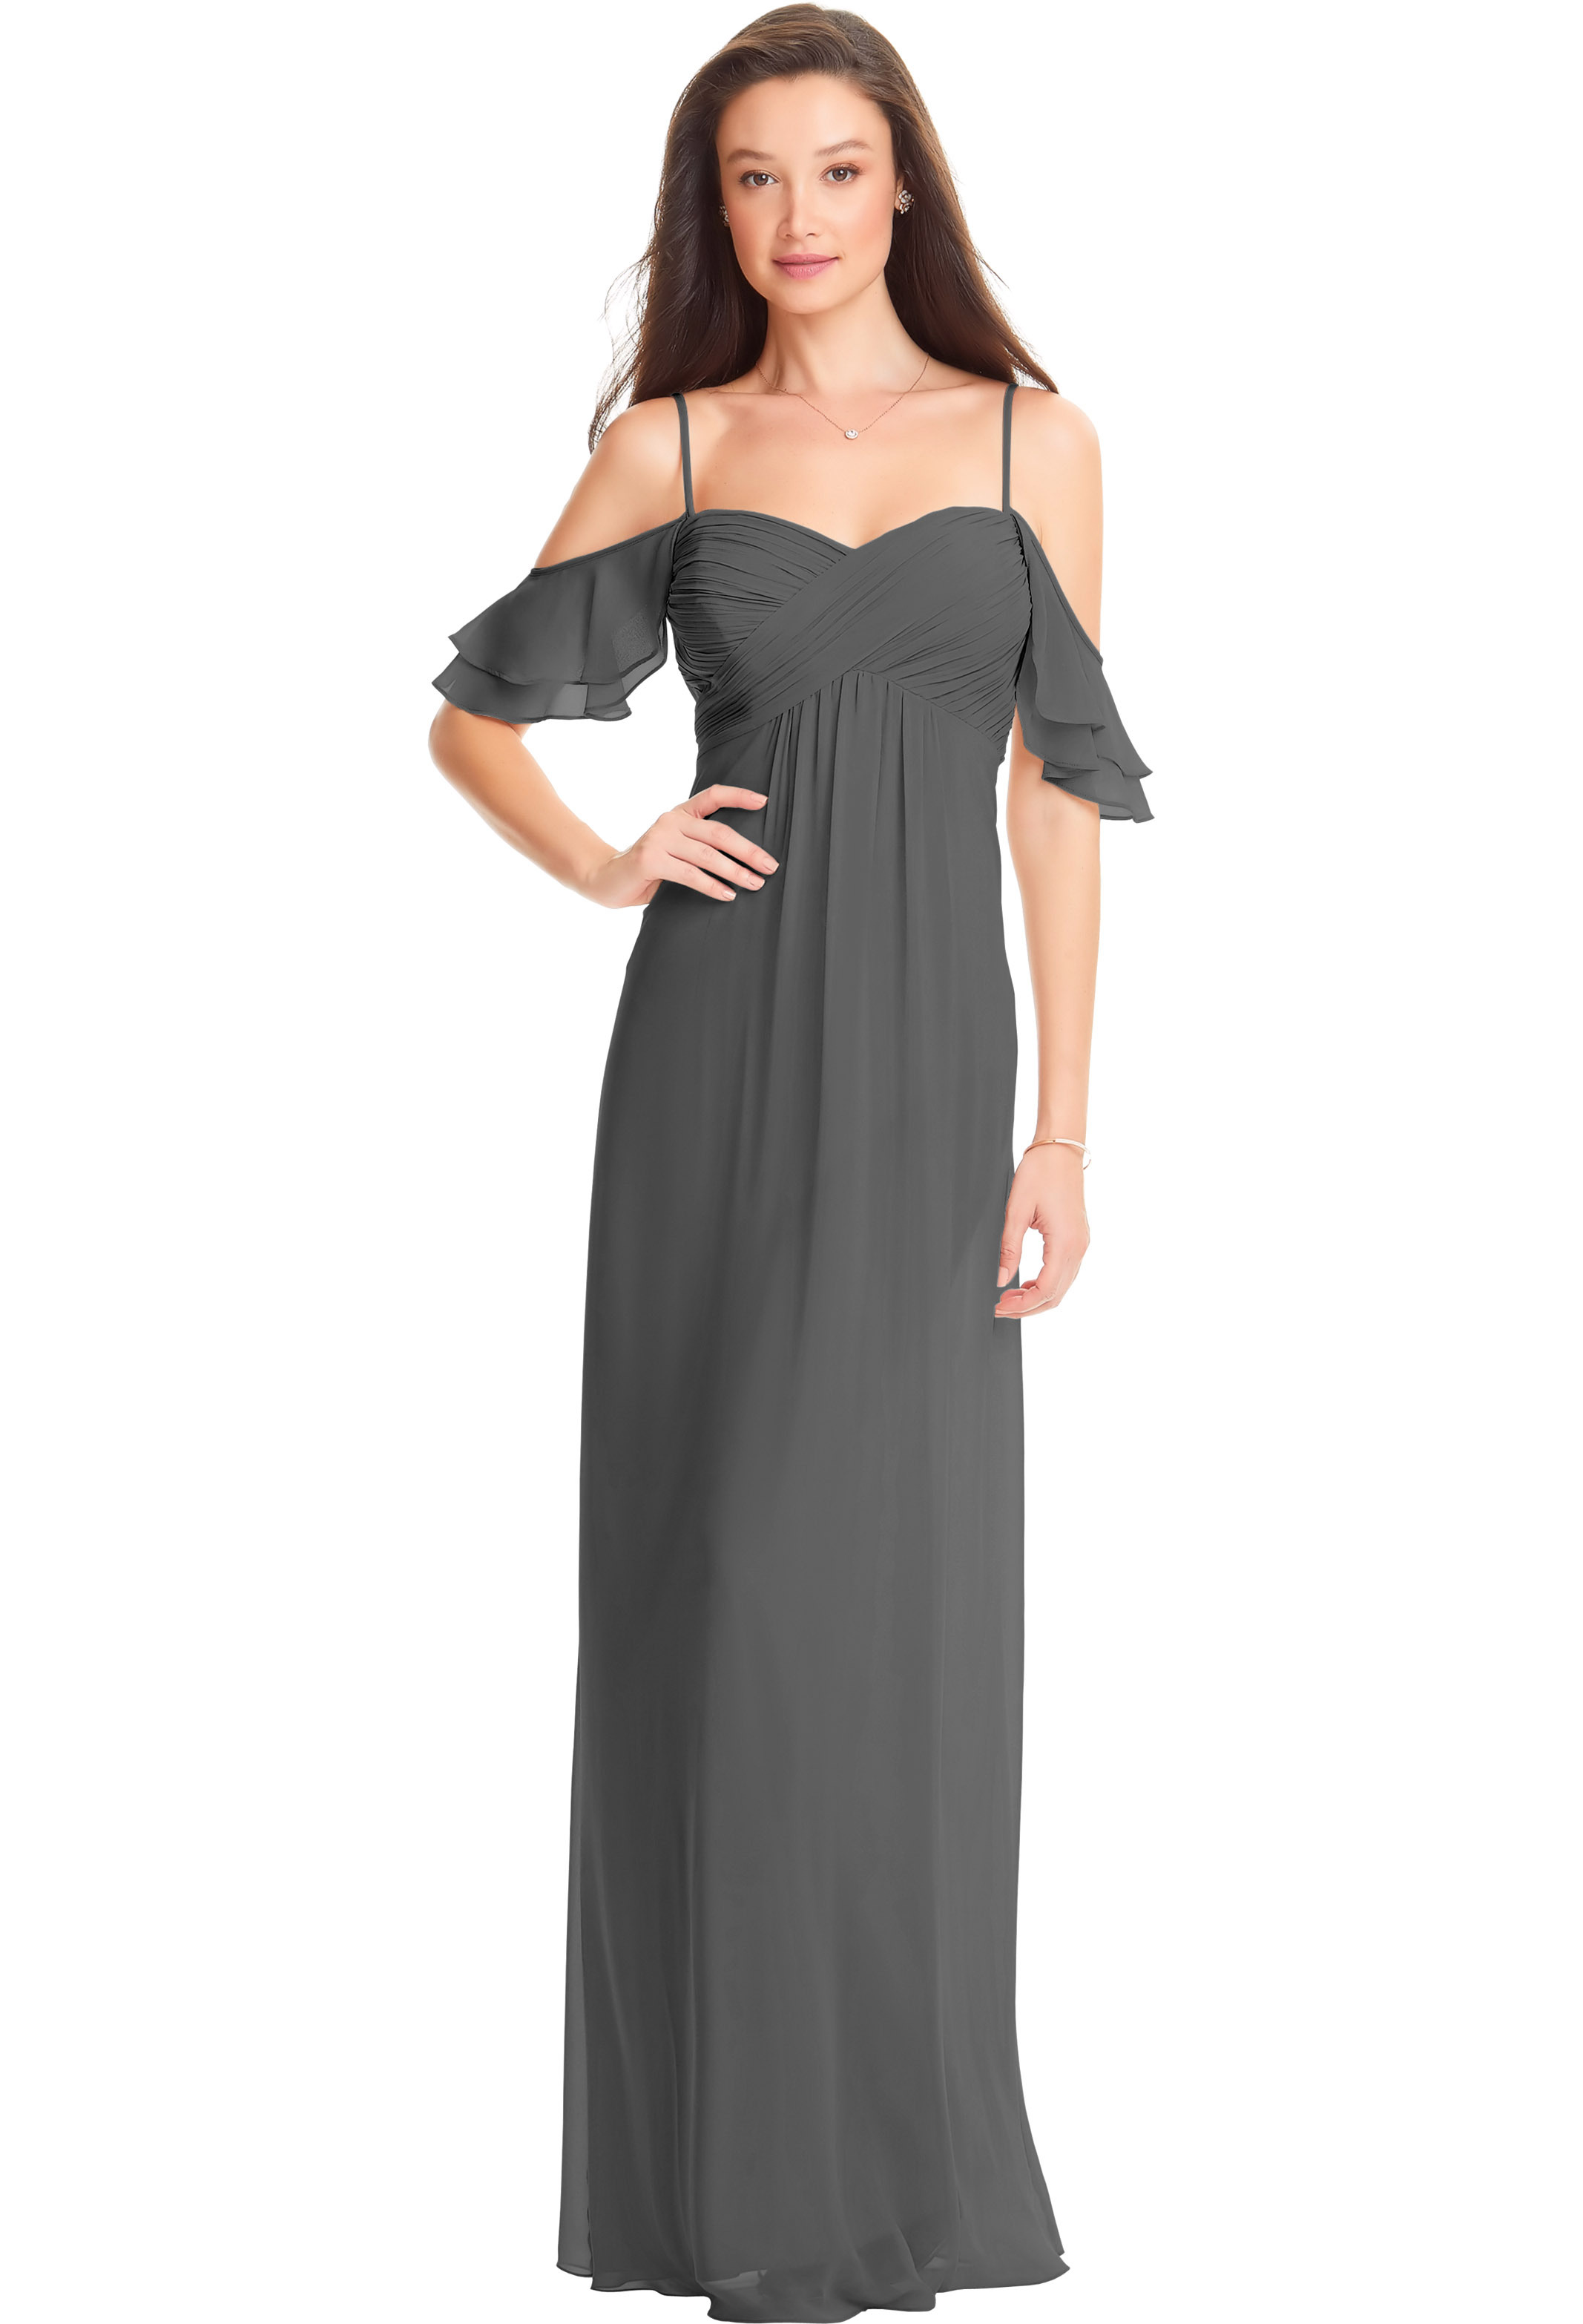 Bill Levkoff BLACK Chiffon Off The Shoulder A-line gown, $178.00 Front